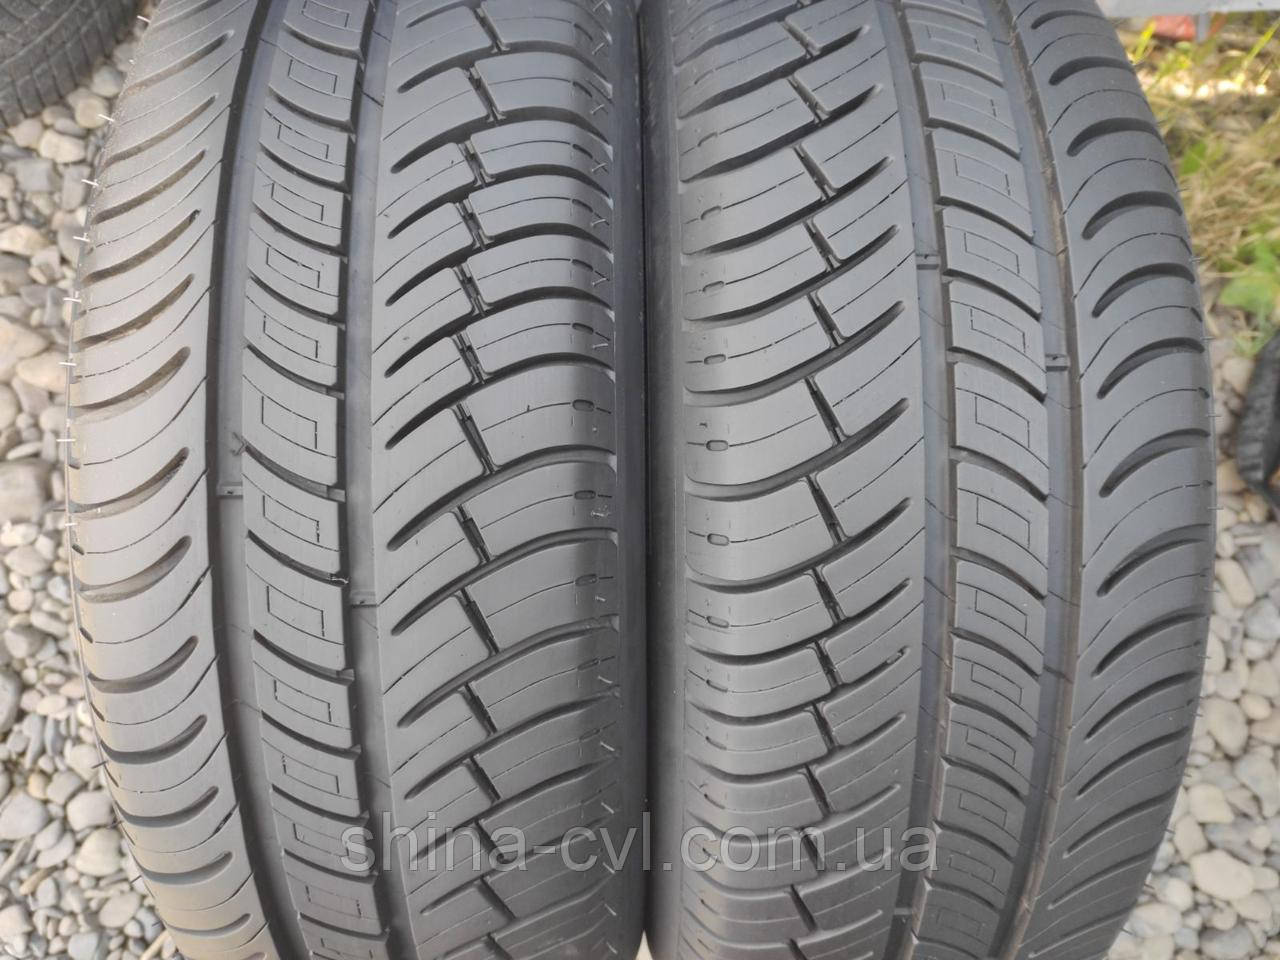 Літні шини 195/60 R15 88H MICHELIN ENERGY SAVER E32